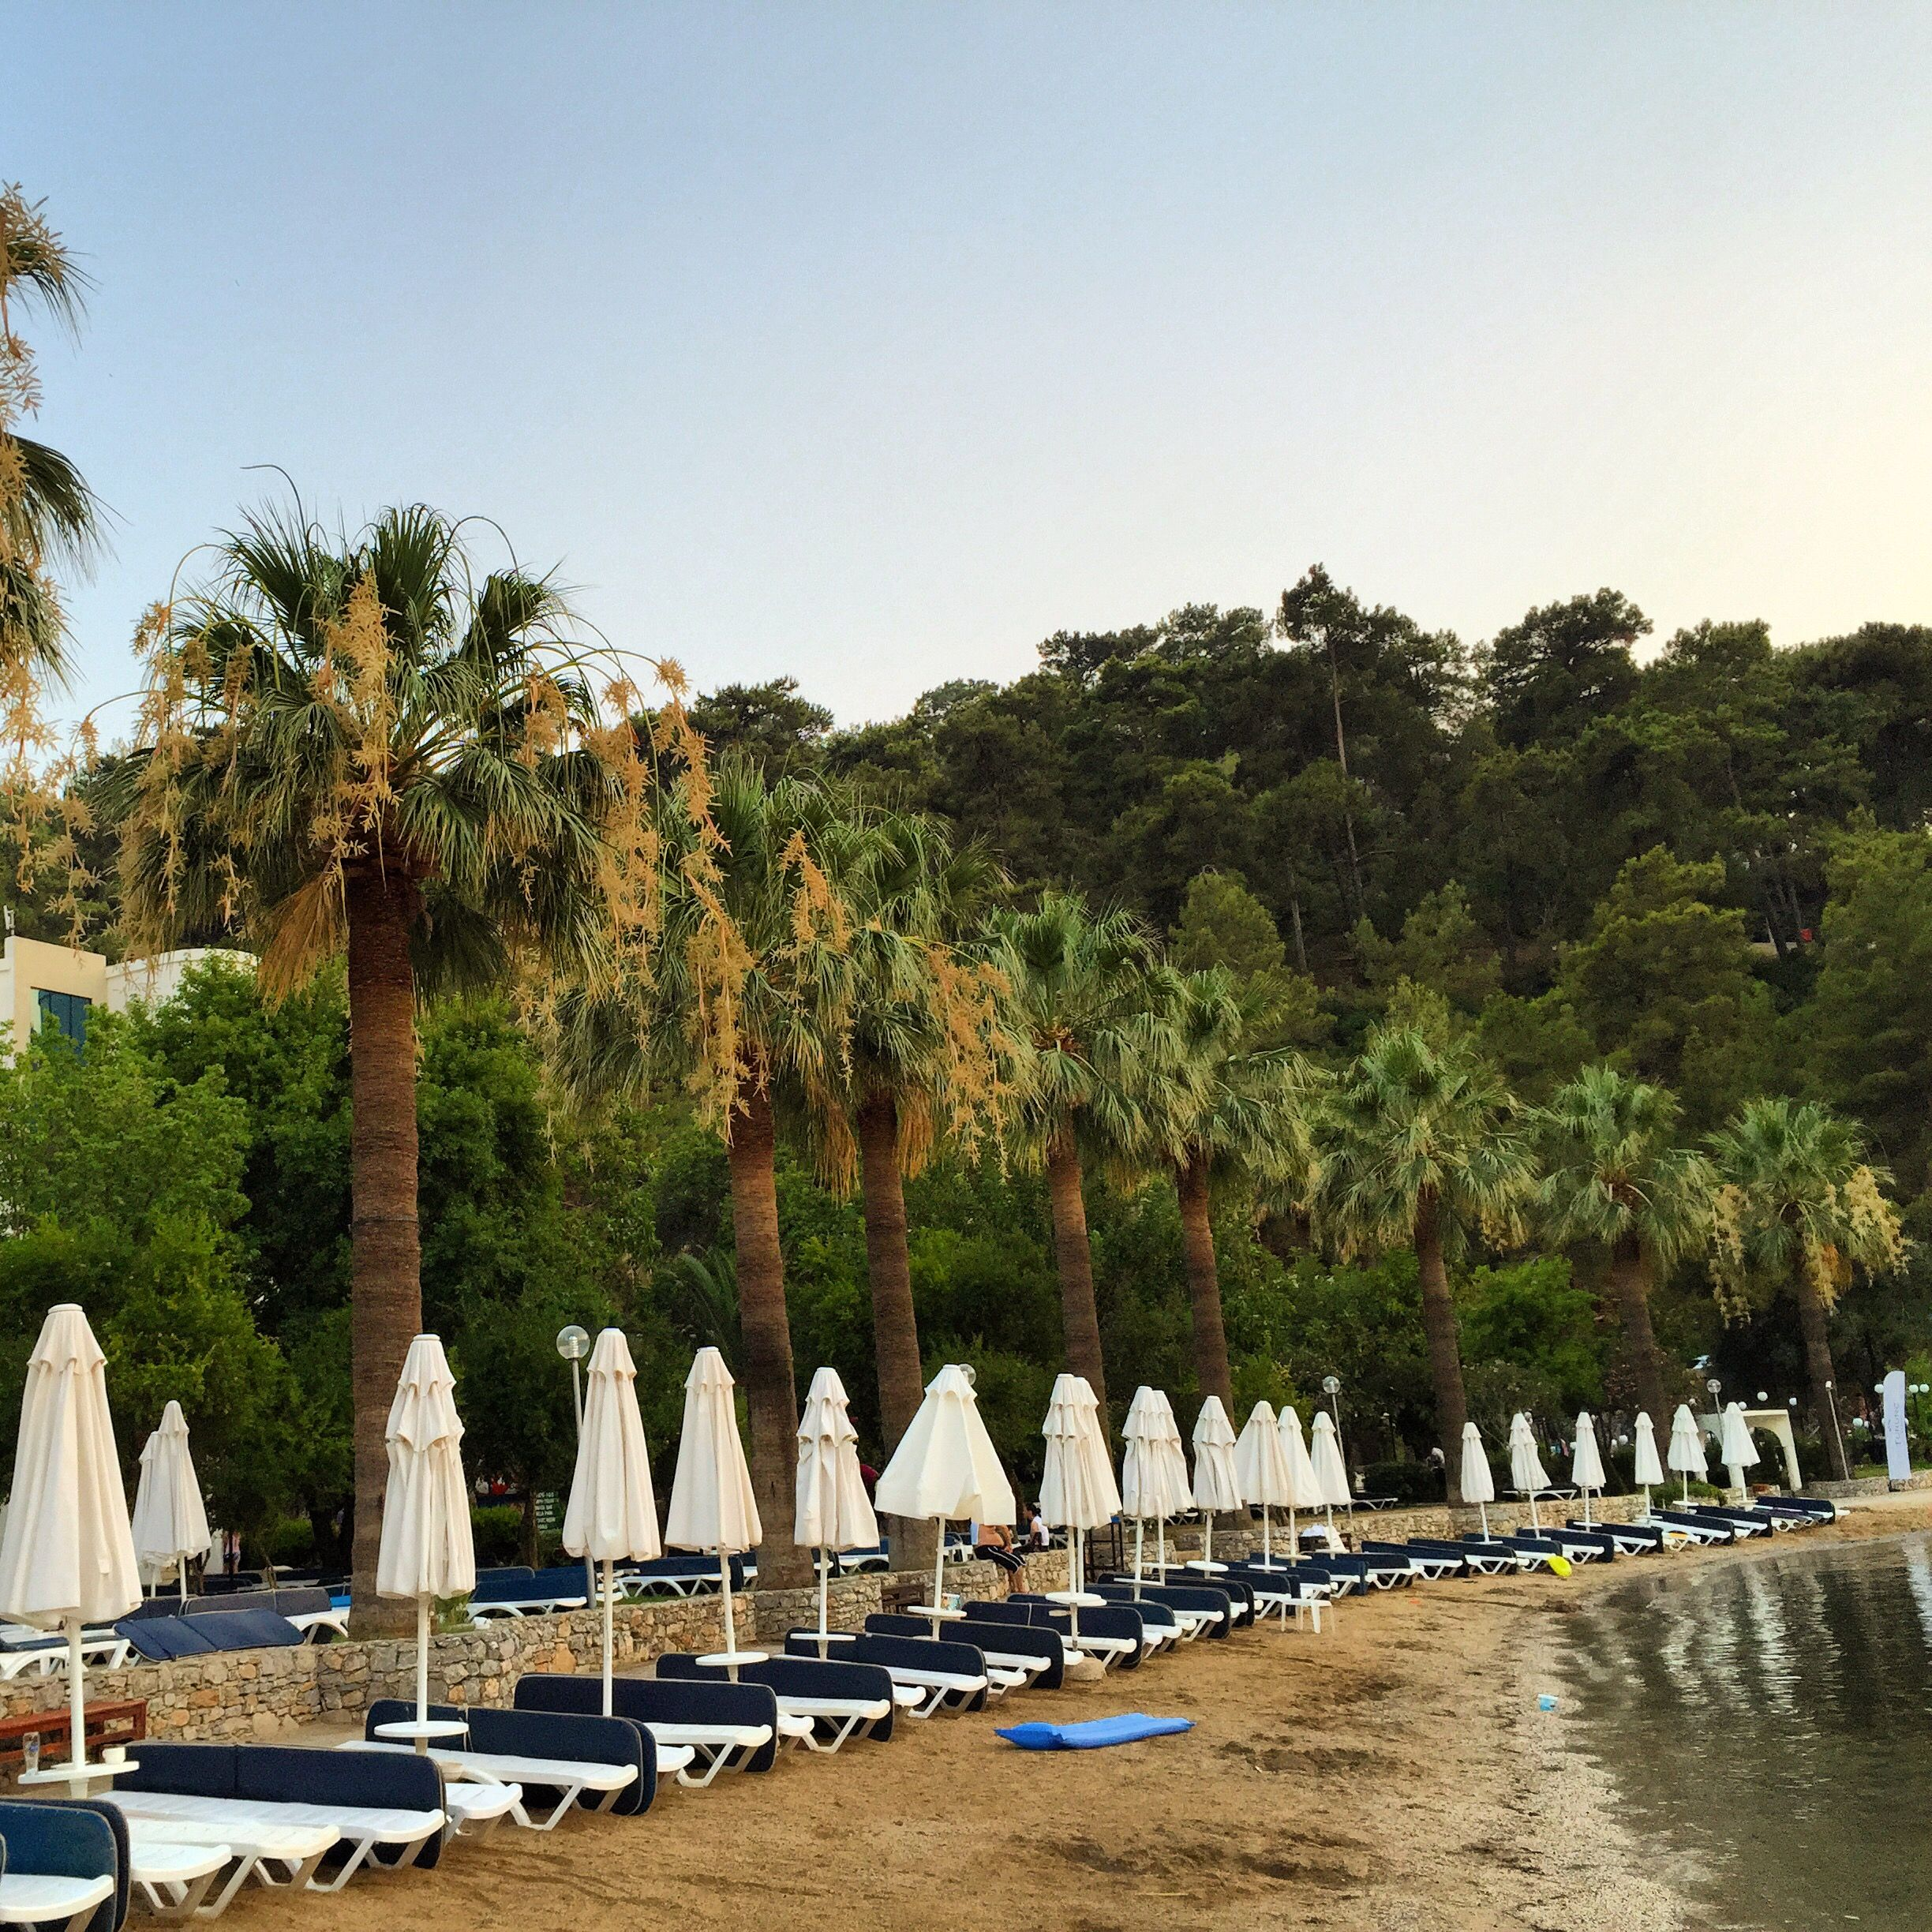 Turunç Otel, Marmaris, TURKEY 2015